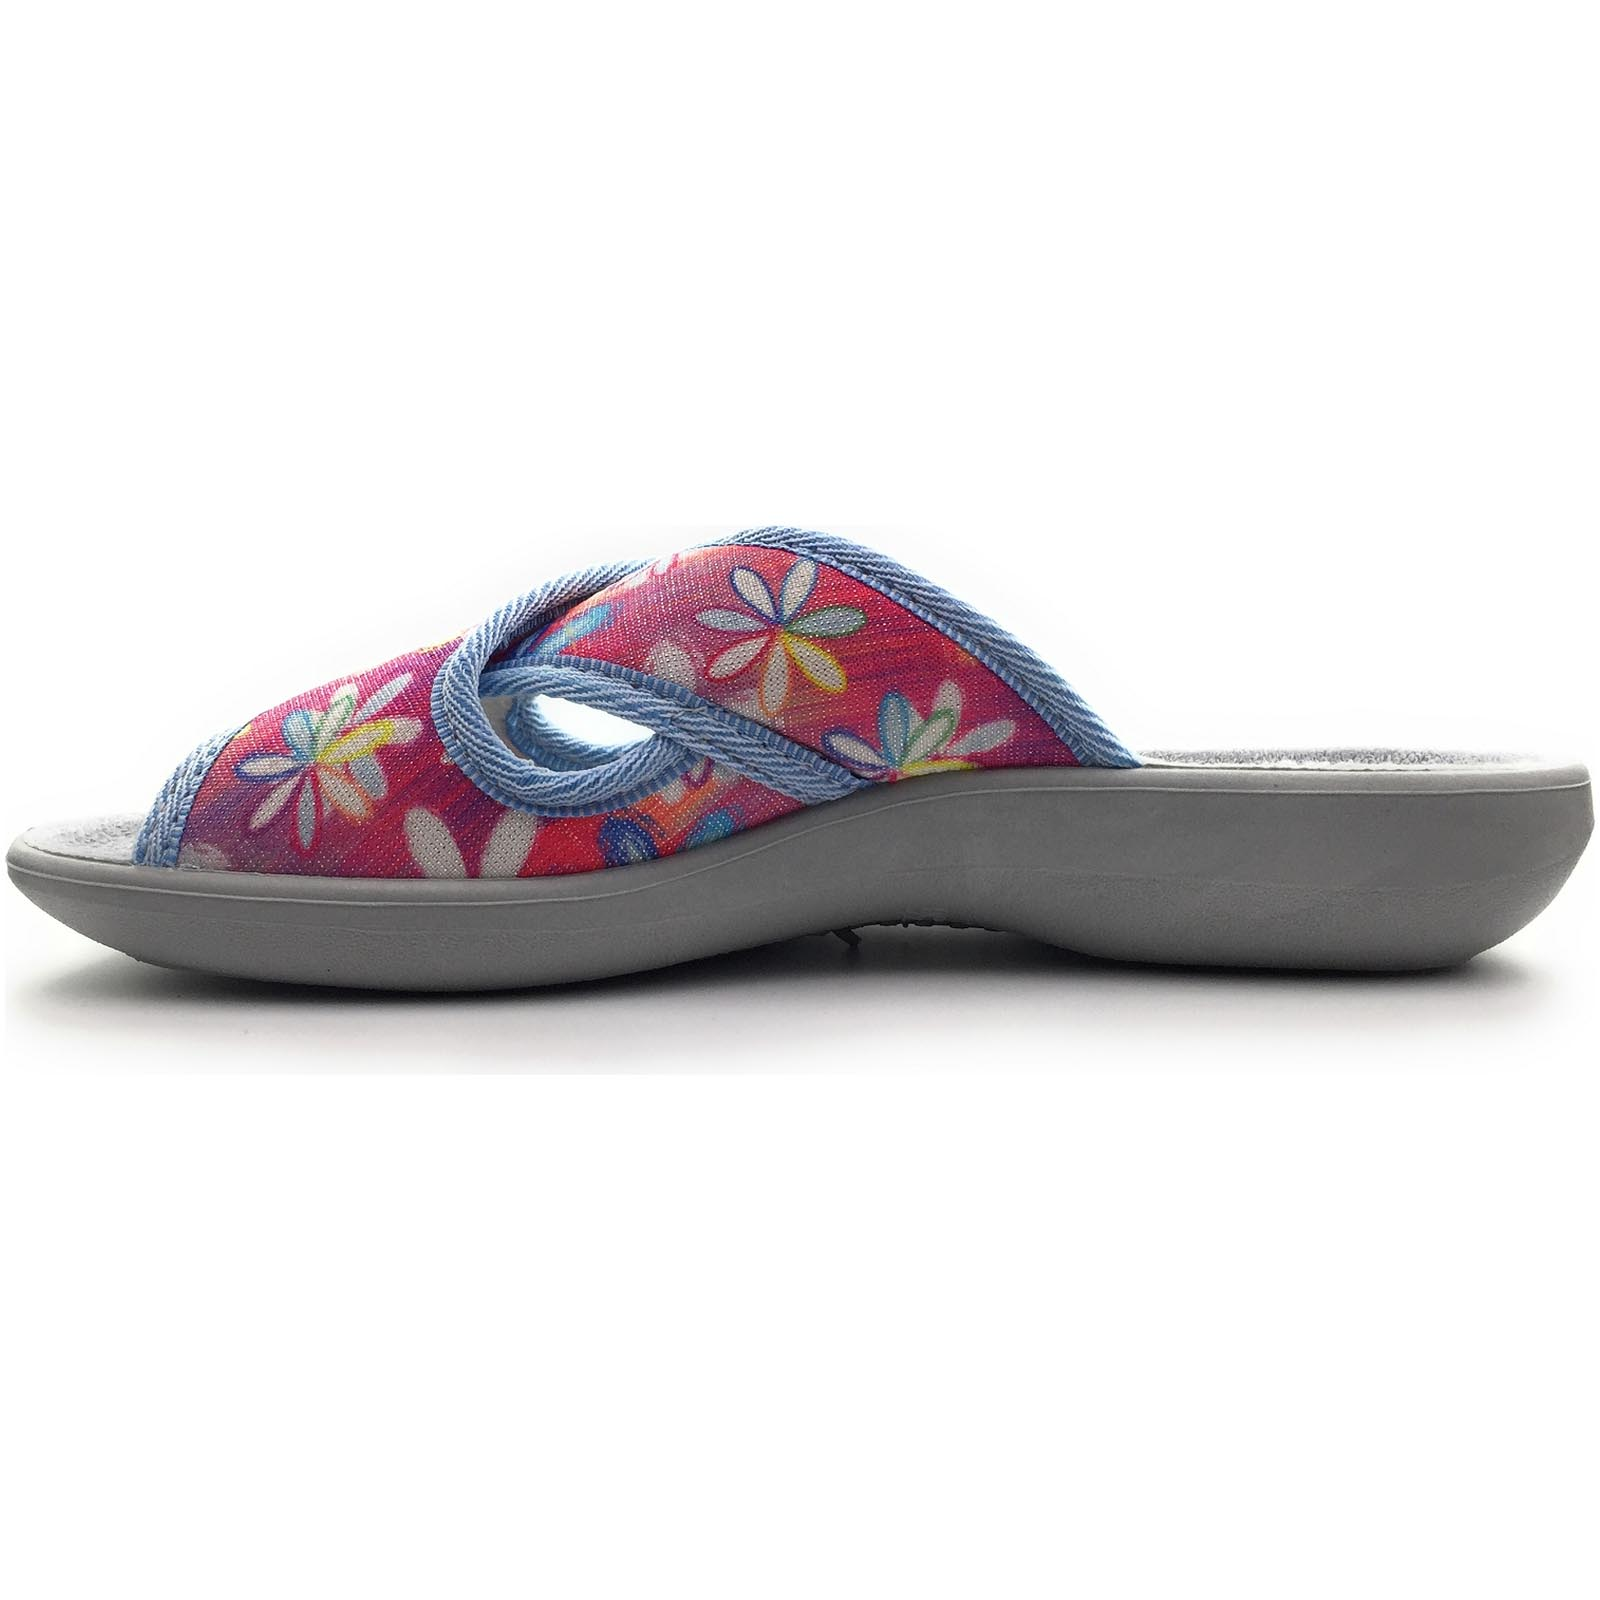 Fargeot chaussons binamur rose8023101_6